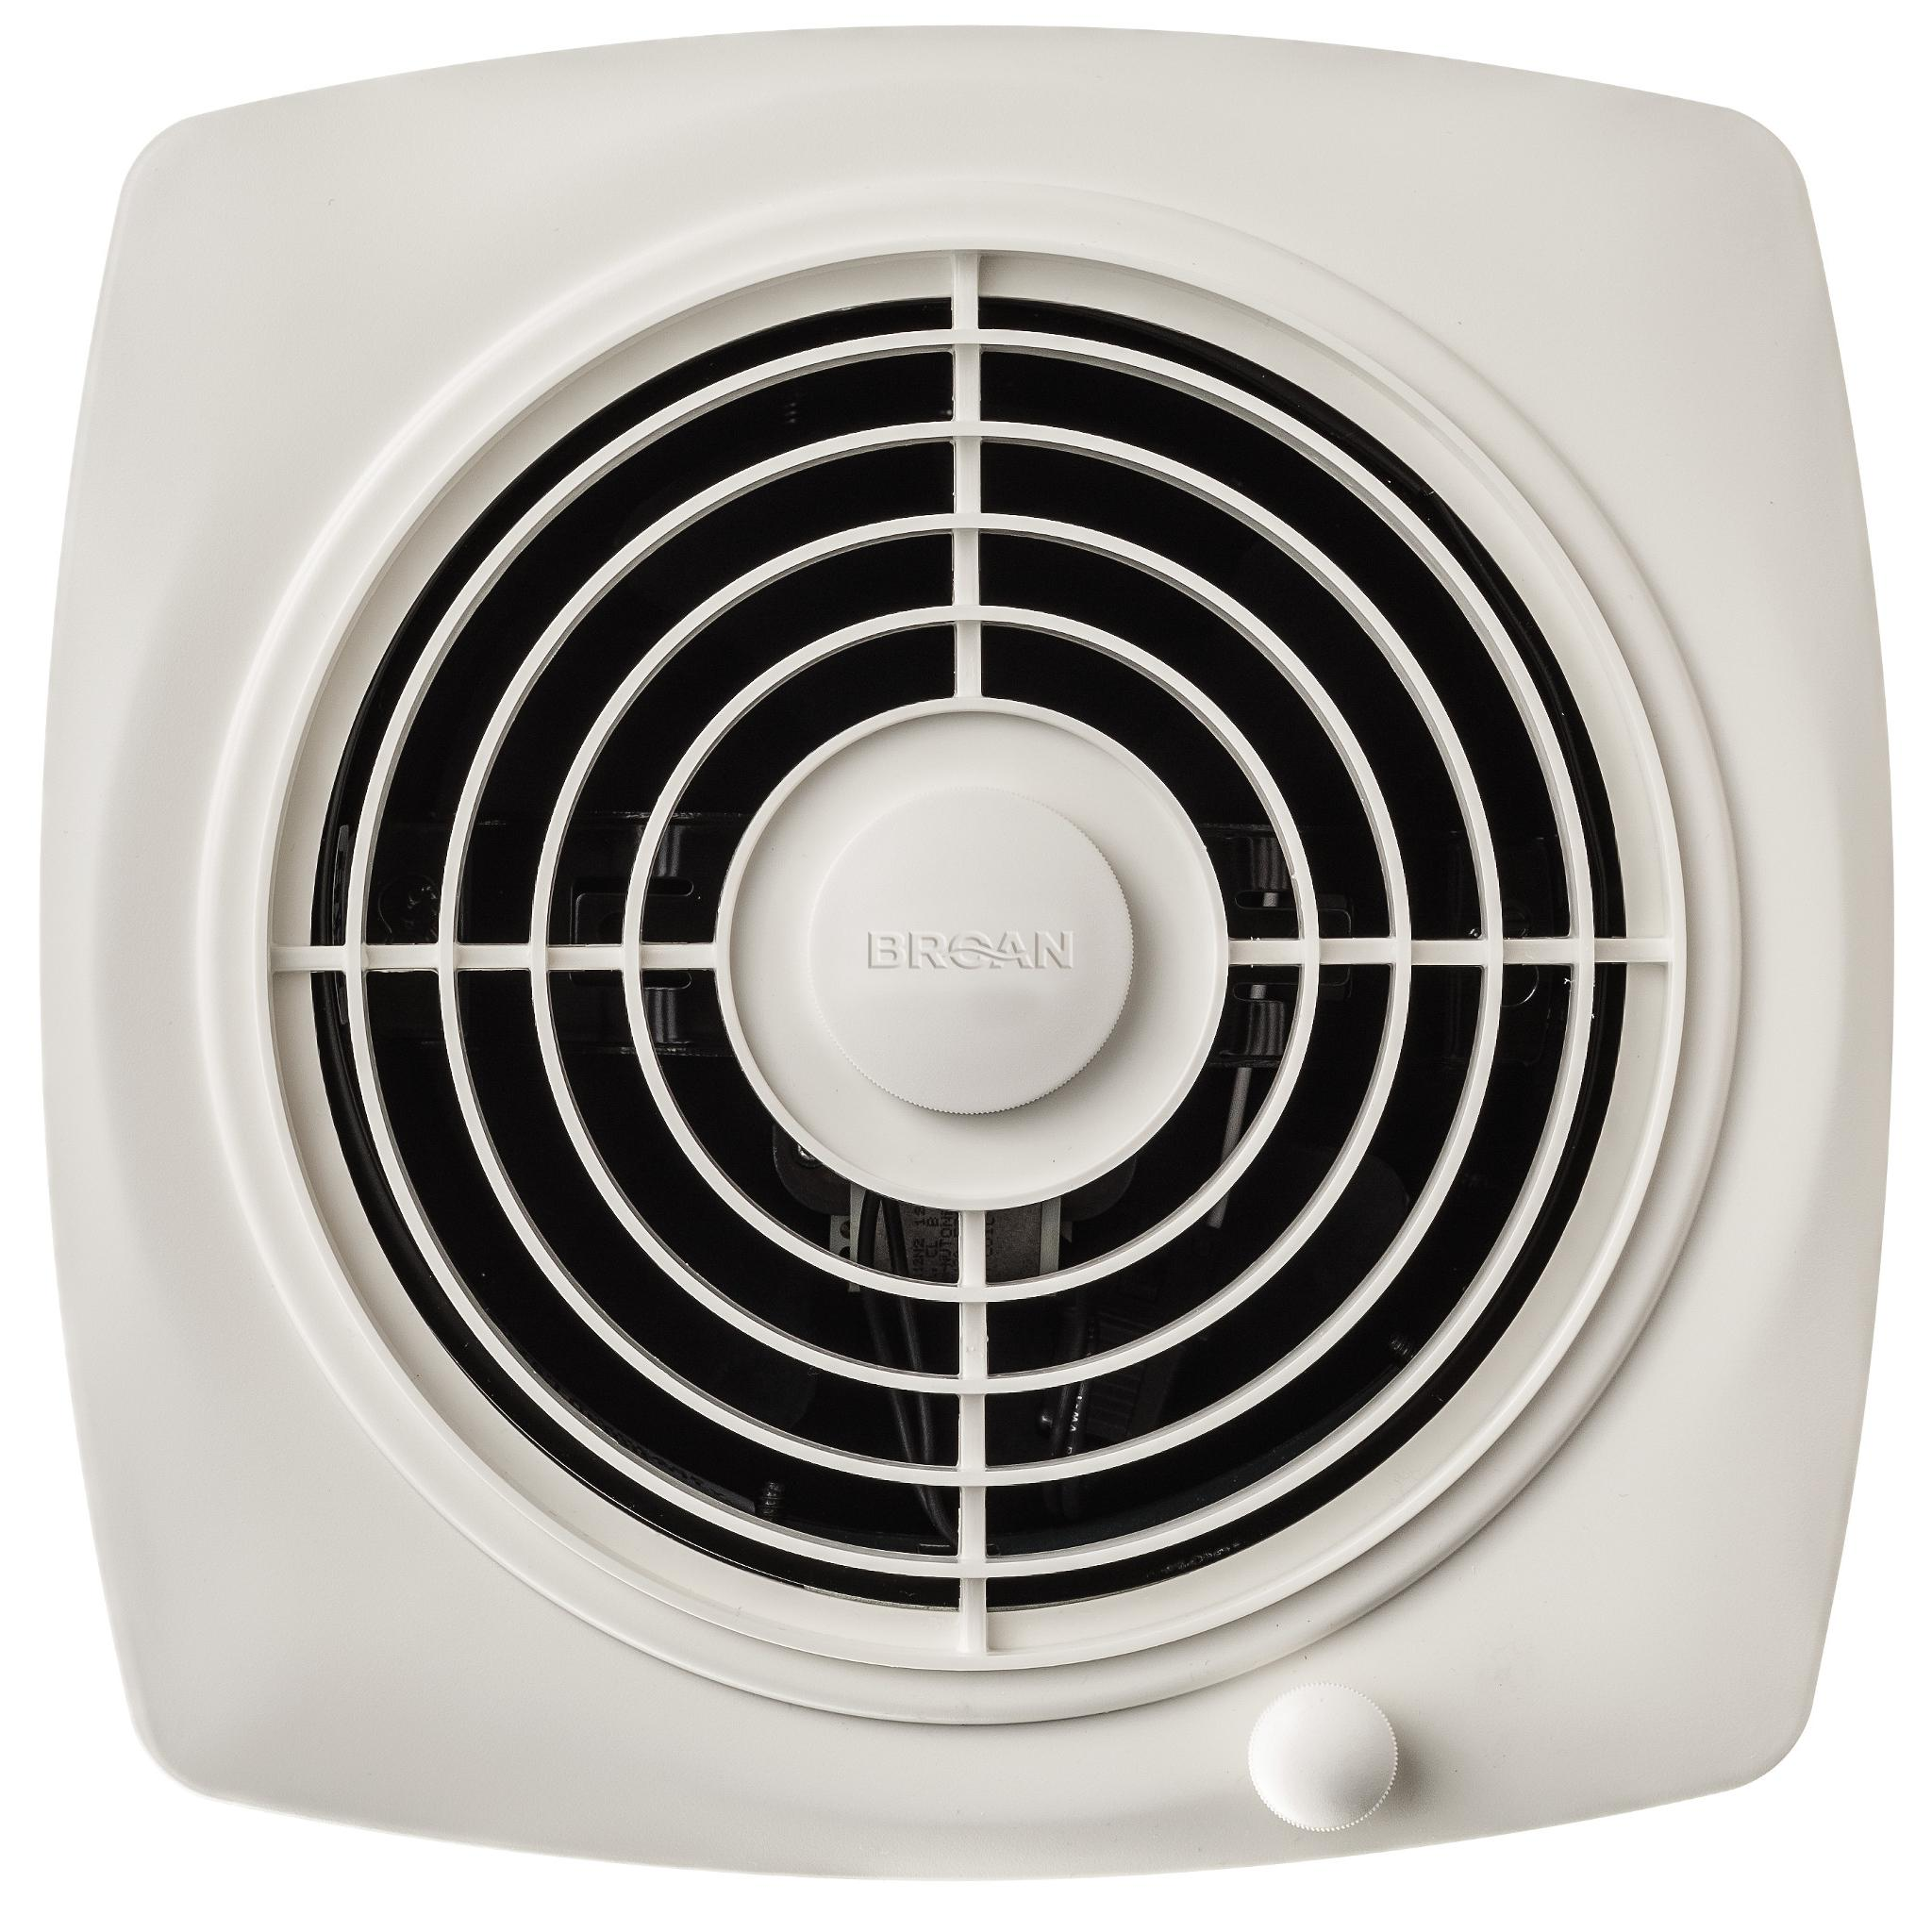 Broan-Nutone 509S Through-the-Wall Ventilation Fan, White Square Exhaust  Fan, 6.5 Sones, 180 CFM, 8\